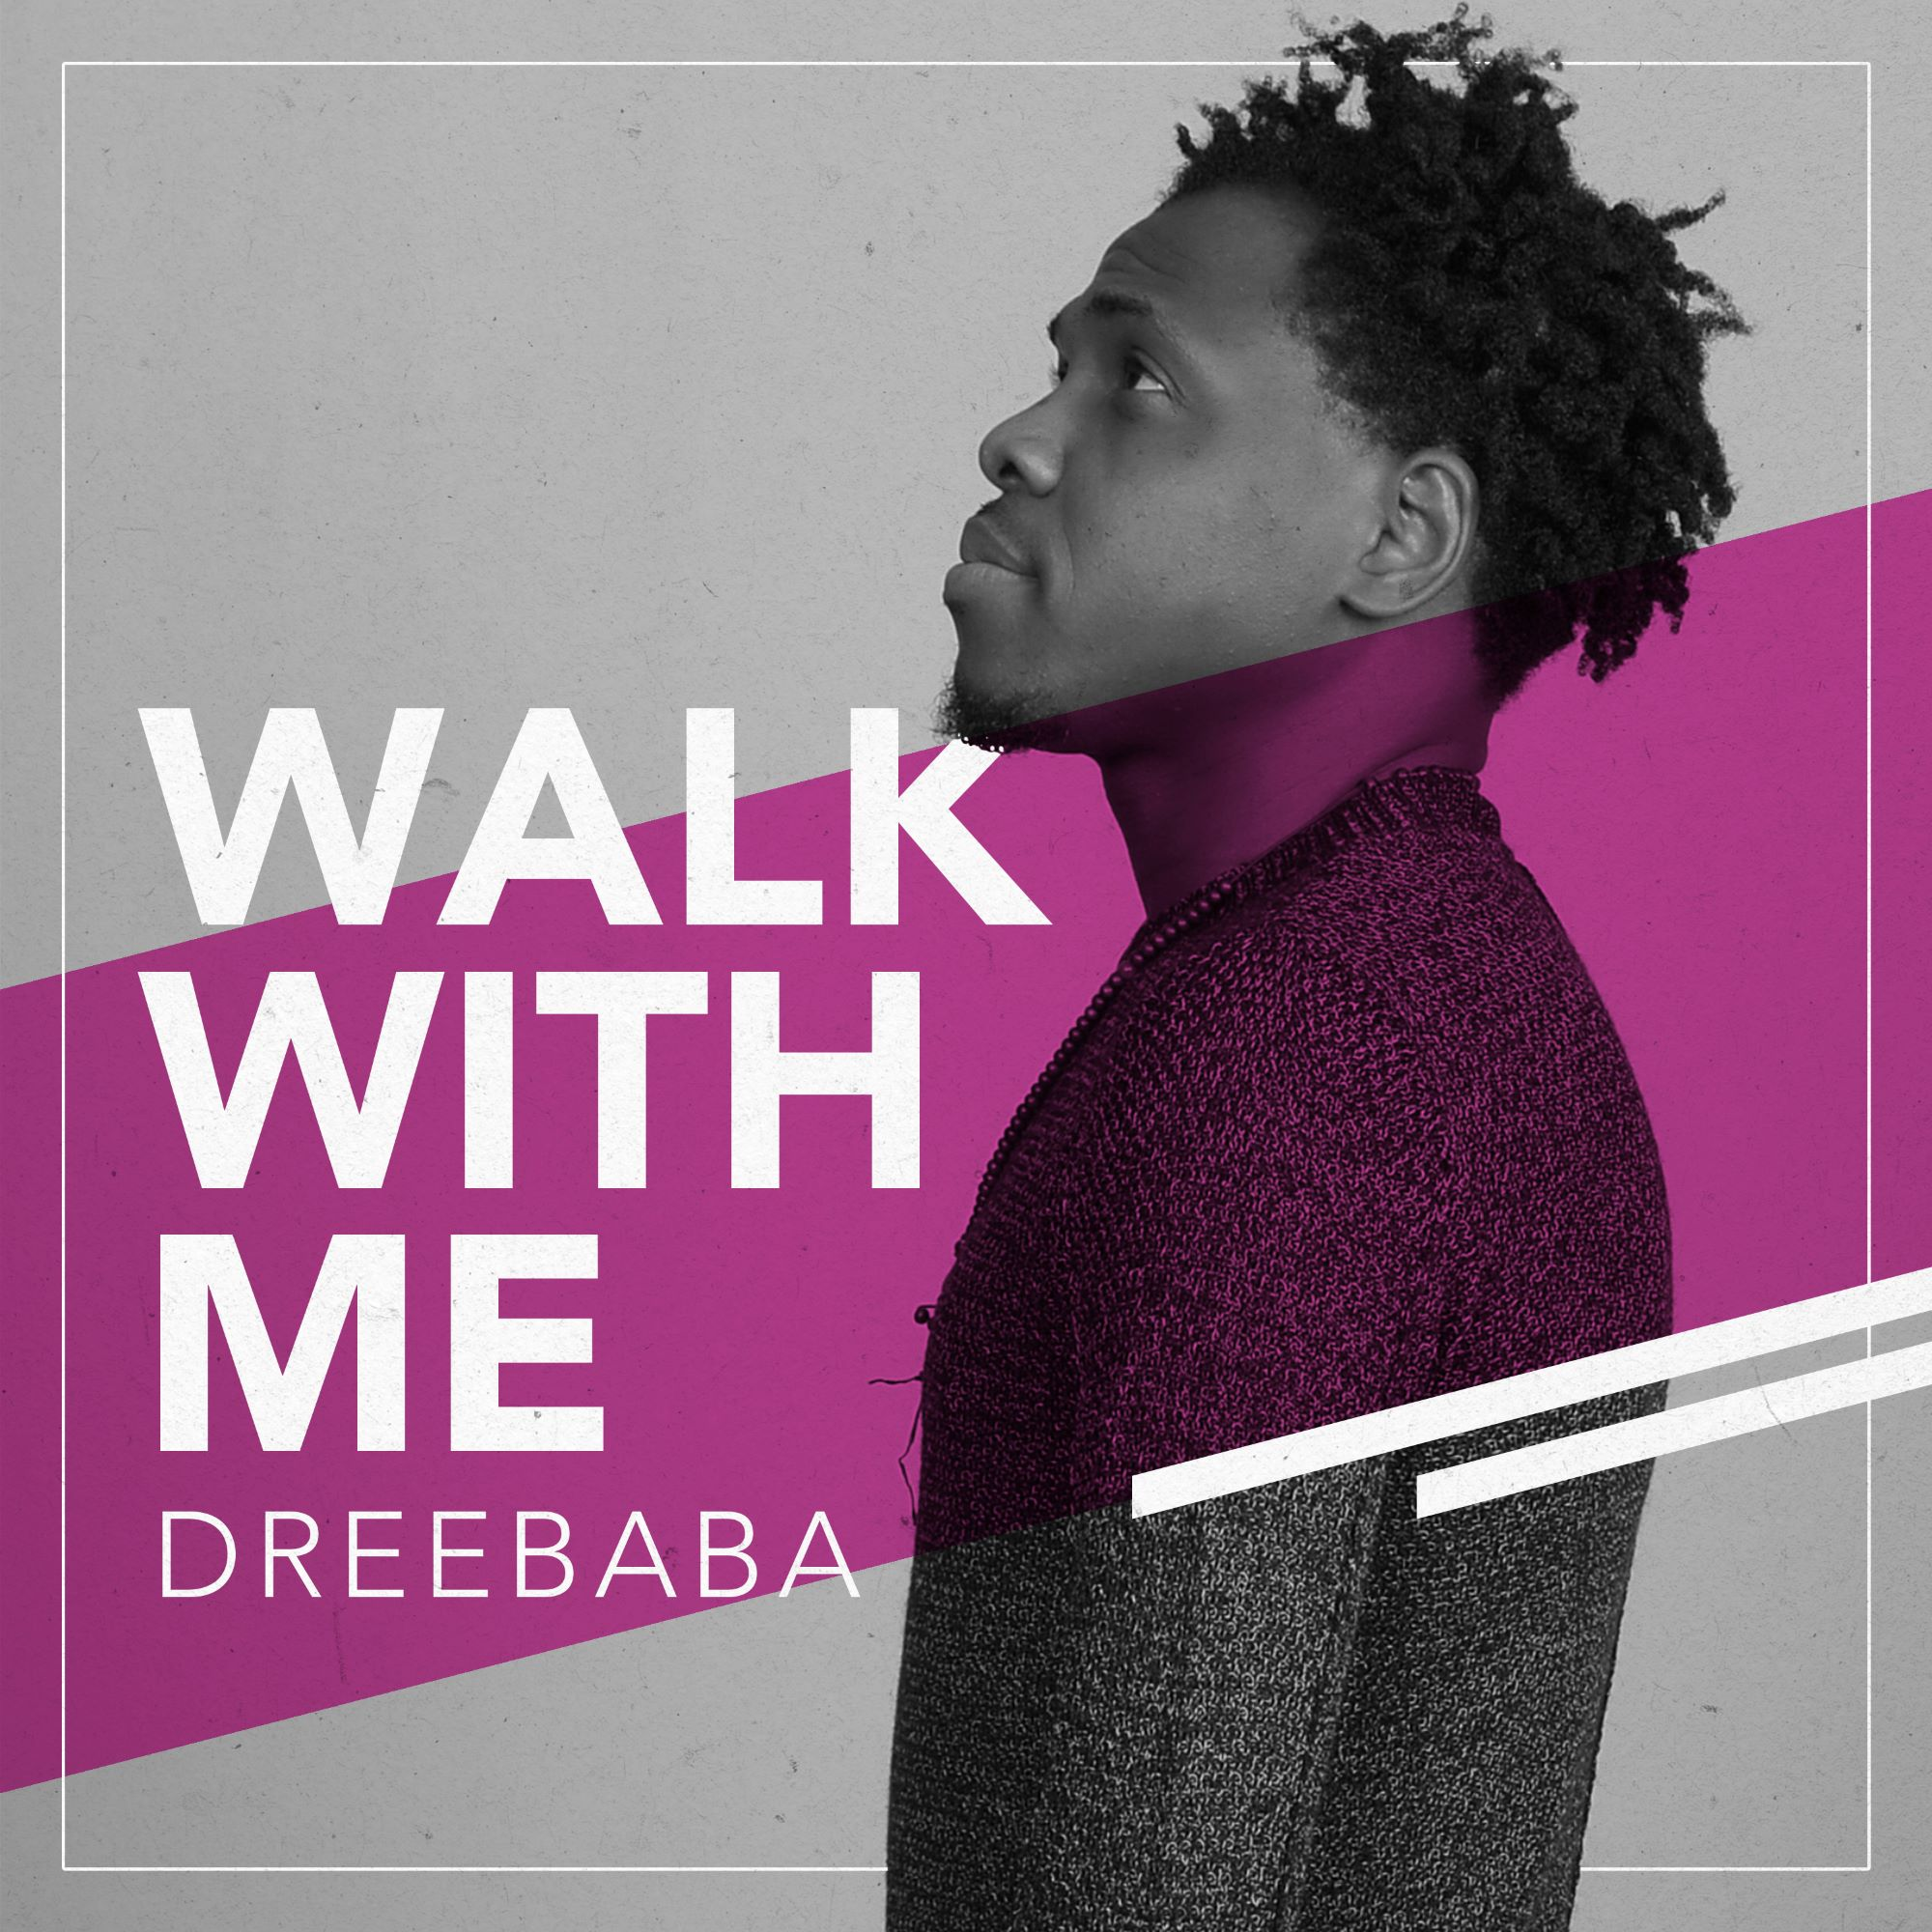 Dreebaba - Walk With Me Official Video Release